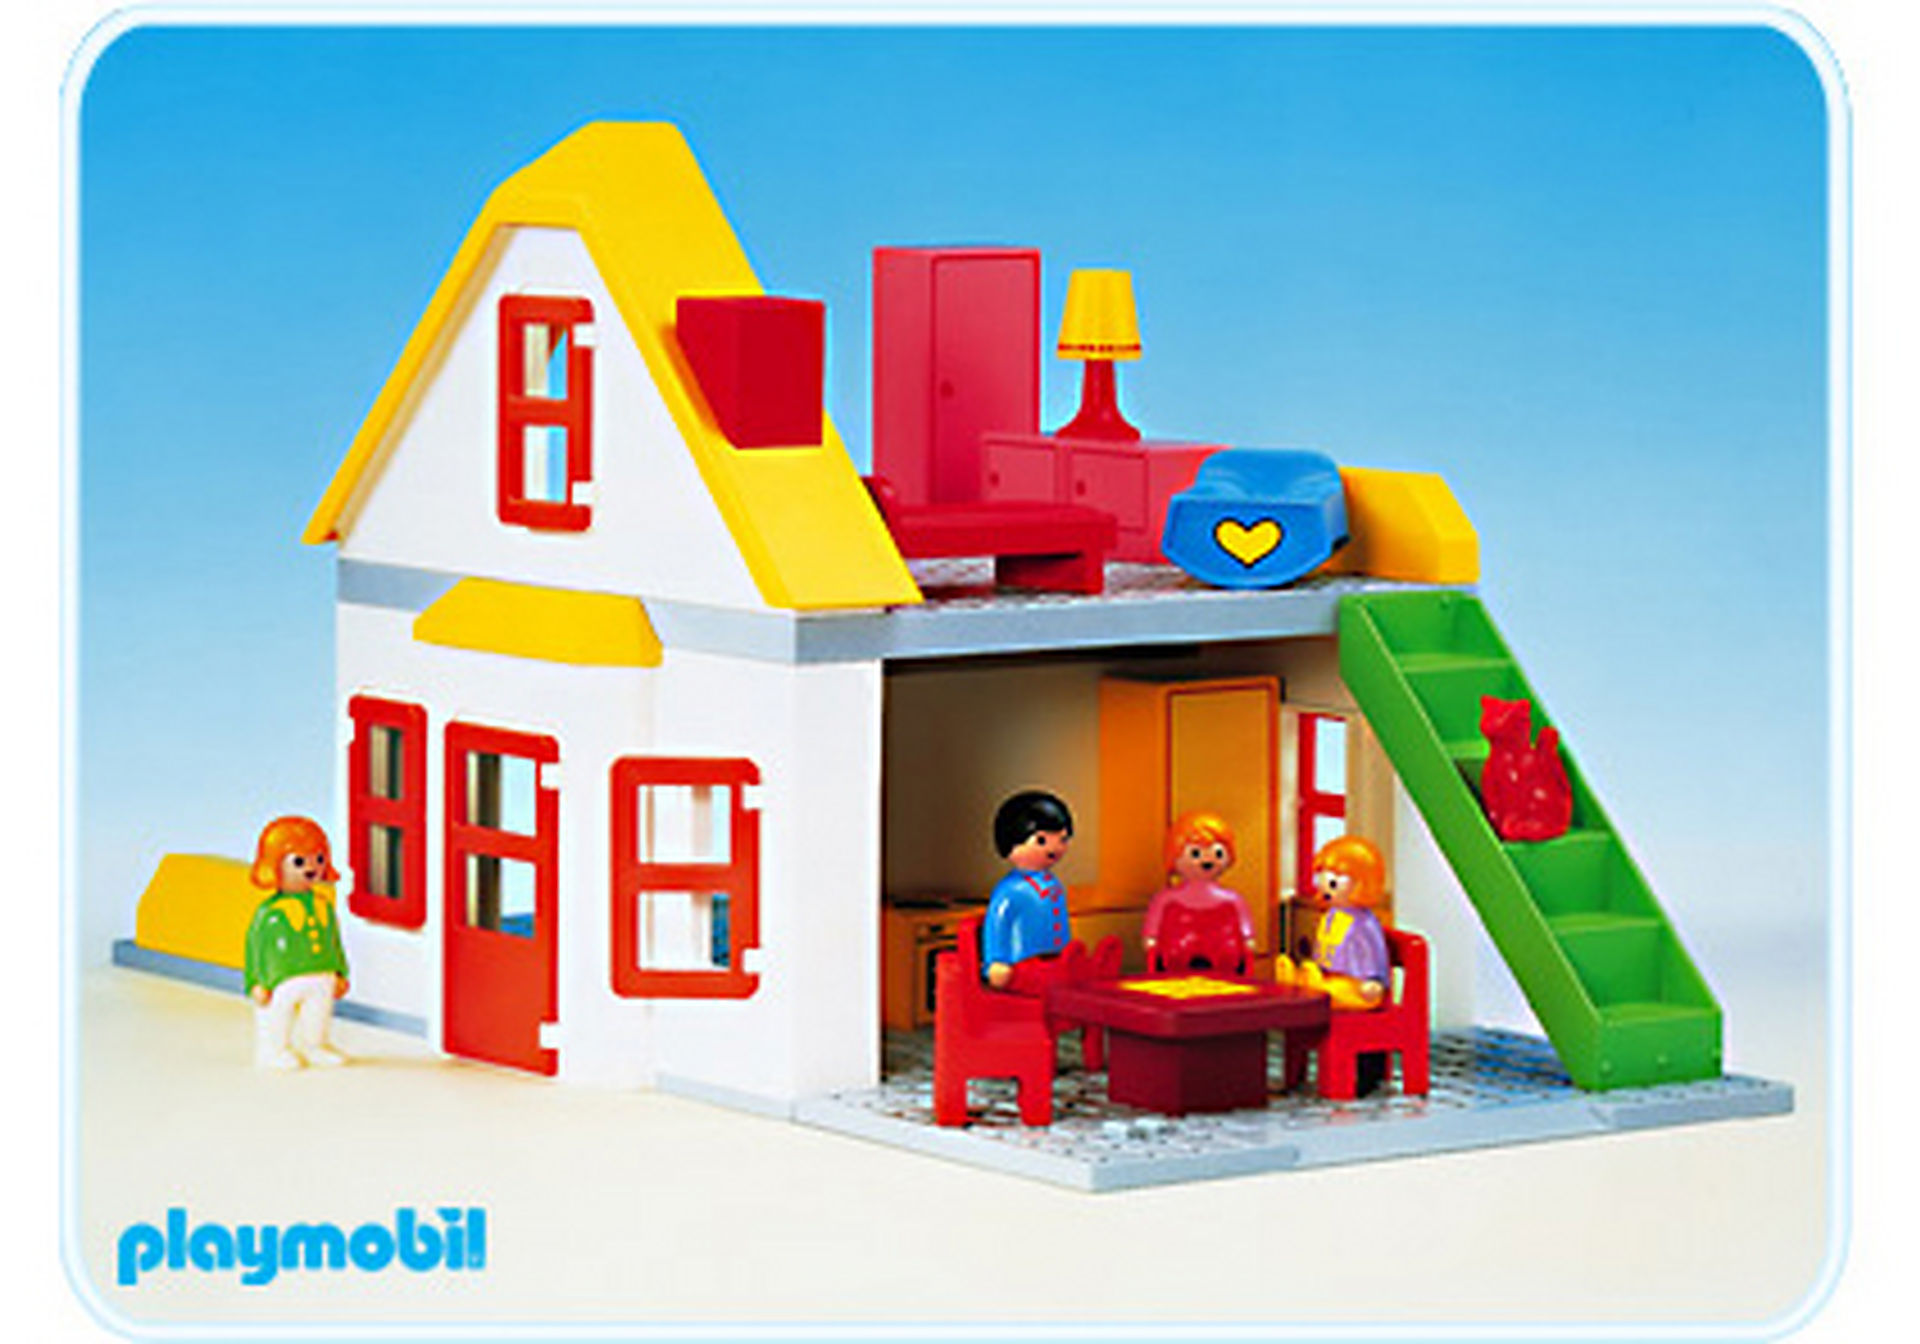 http://media.playmobil.com/i/playmobil/6600-A_product_detail/Maison avec ameublement